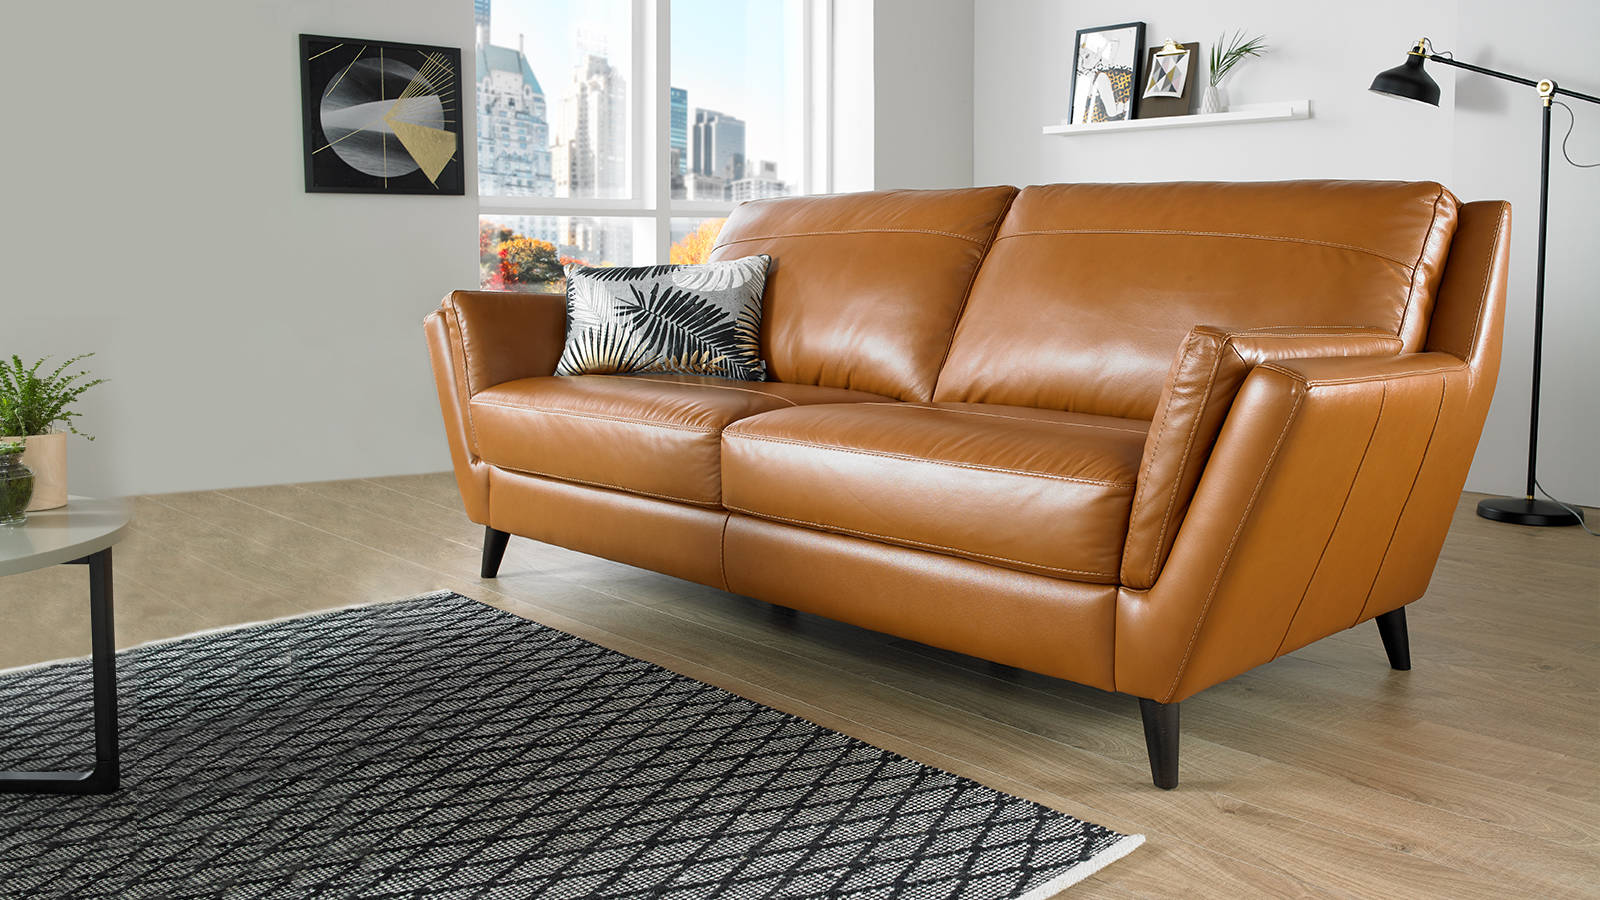 Affordable sofa bed uk affordable sofa beds home design for Affordable furniture uk